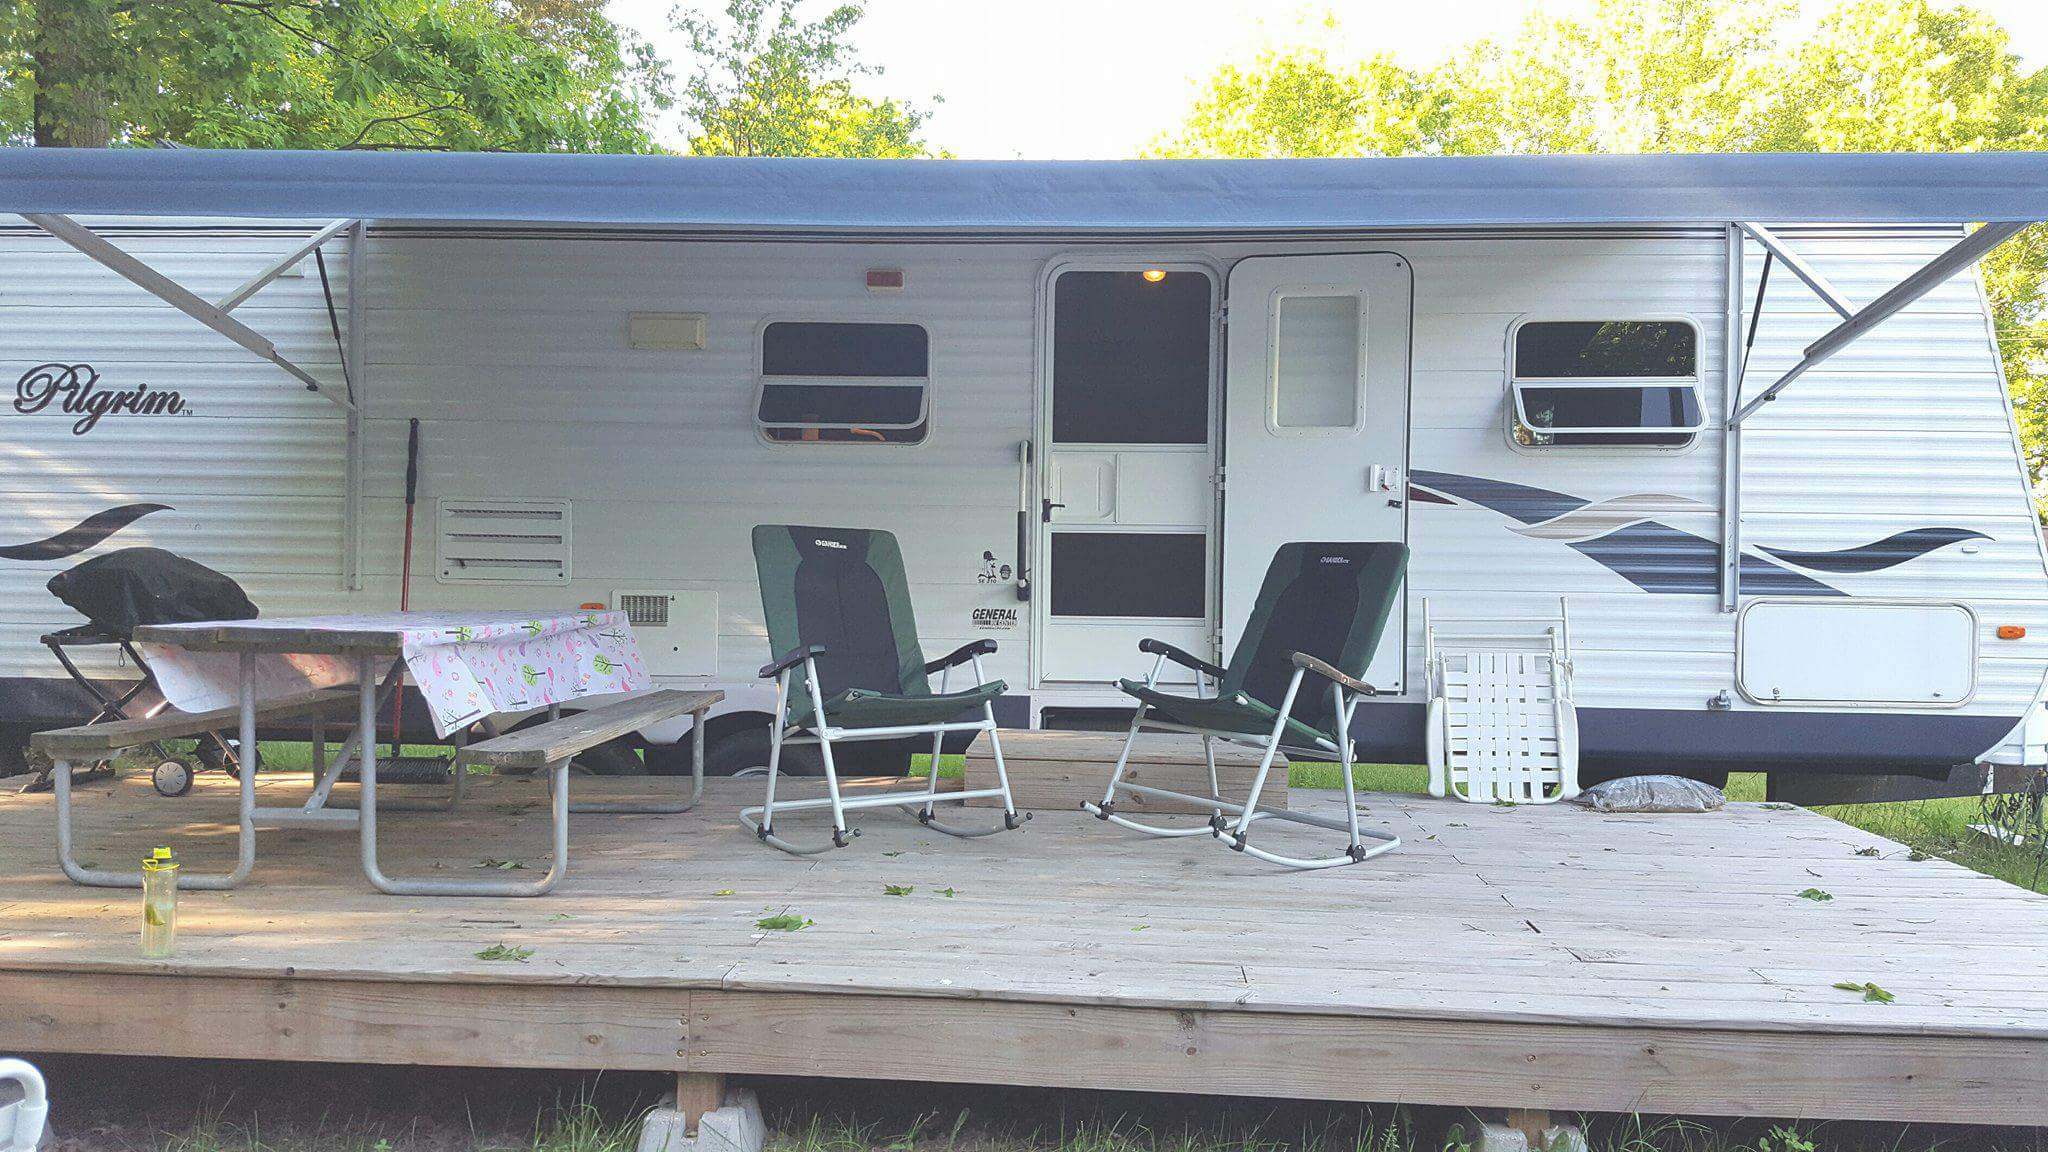 Rental Trailers (Sleep up to 6 people)Trailer #55 and Trailer #66 - Rates:$96/Night$576/Week